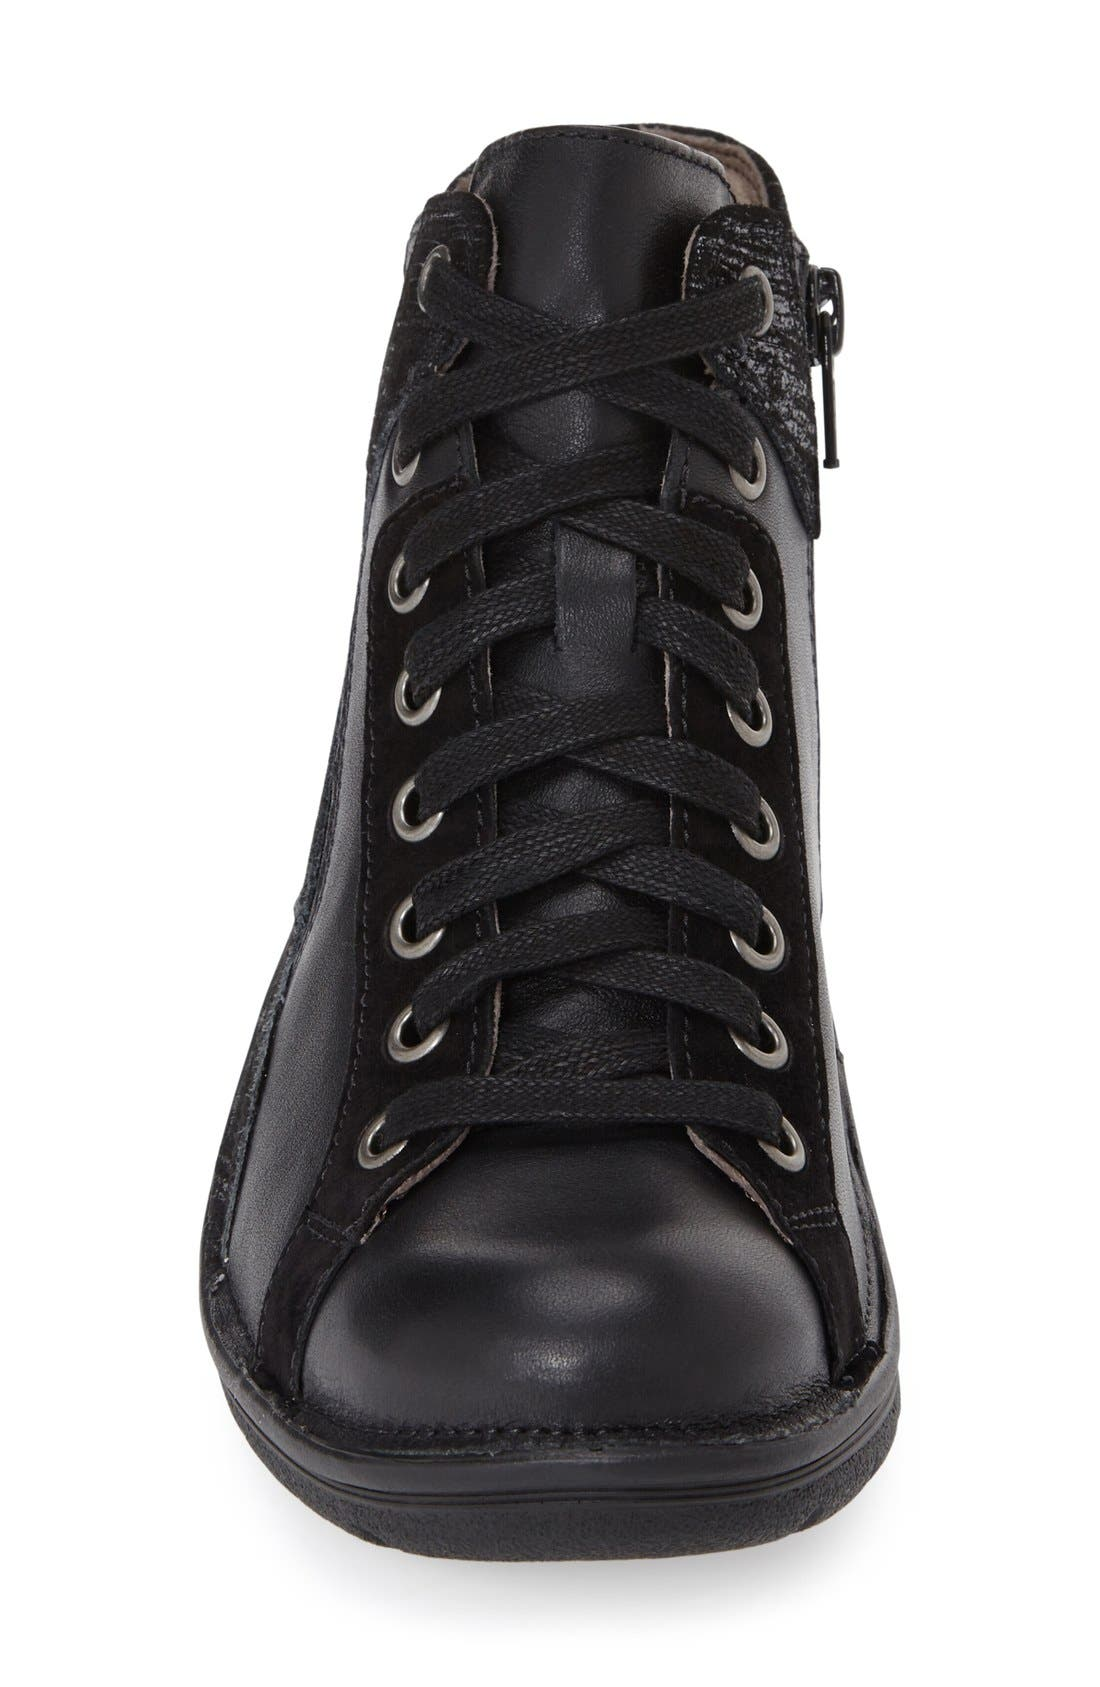 'Orbit' Boot,                             Alternate thumbnail 3, color,                             Black/ Anthracite Leather